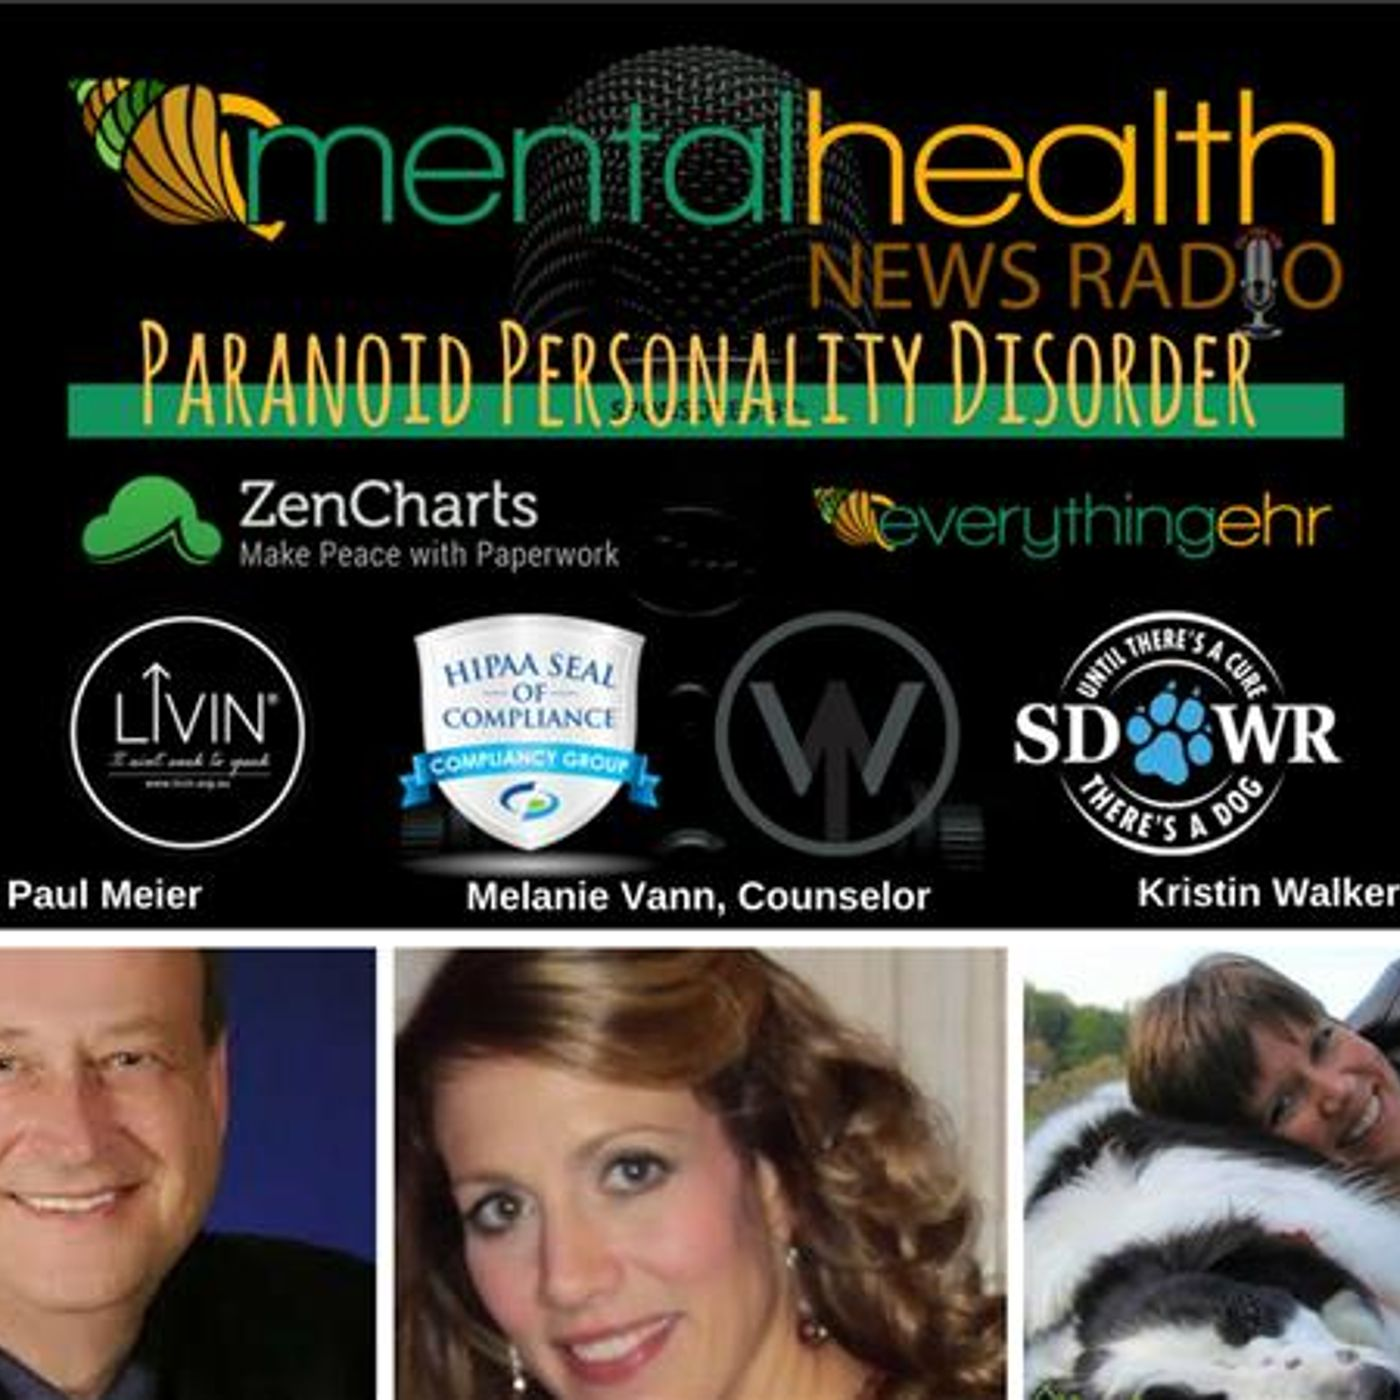 Mental Health News Radio - Round Table Discussions with Dr. Paul Meier: Paranoid Personality Disorder